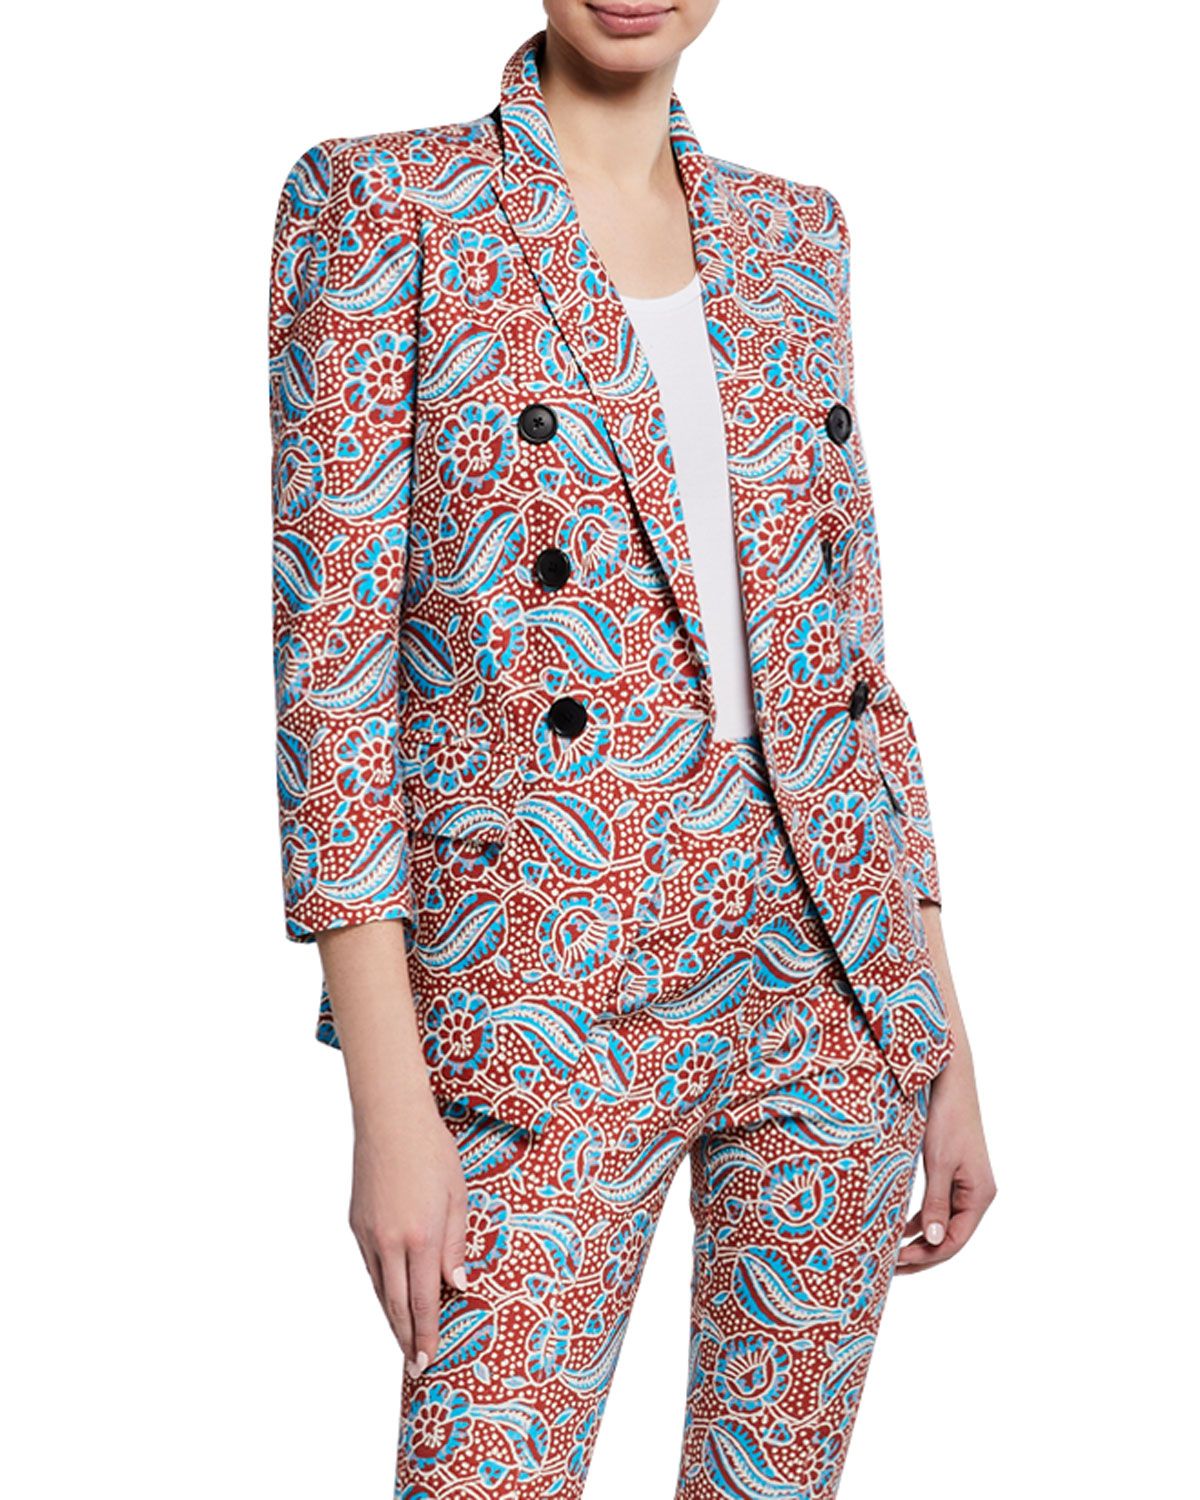 Veronica Beard Jackets EMPIRE PRINTED LINEN-BLEND DICKEY JACKET